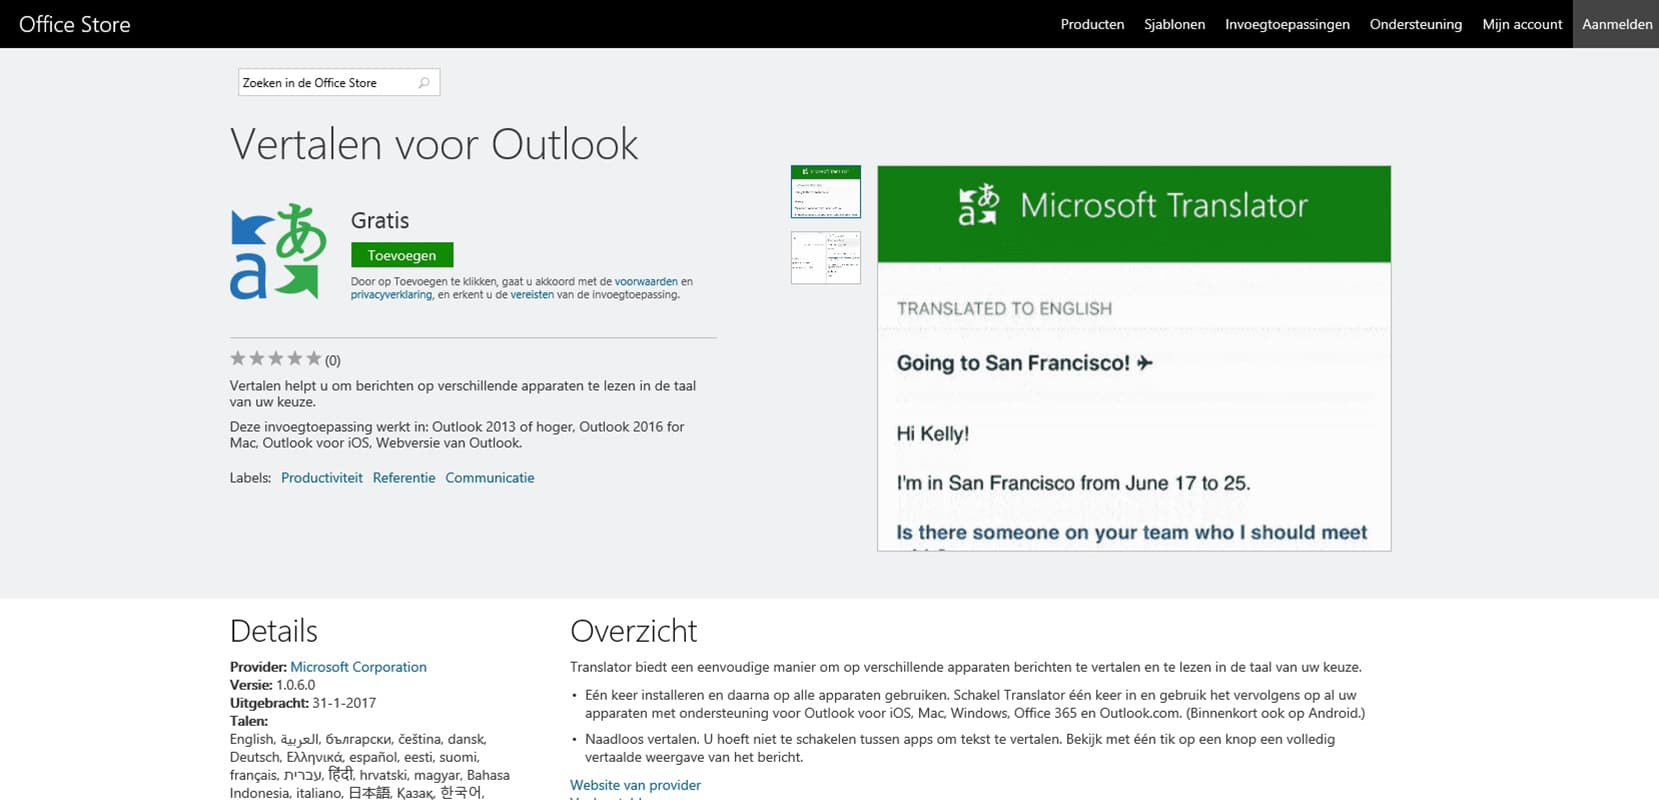 Translator for Outlook - Vertalen voor Outlook